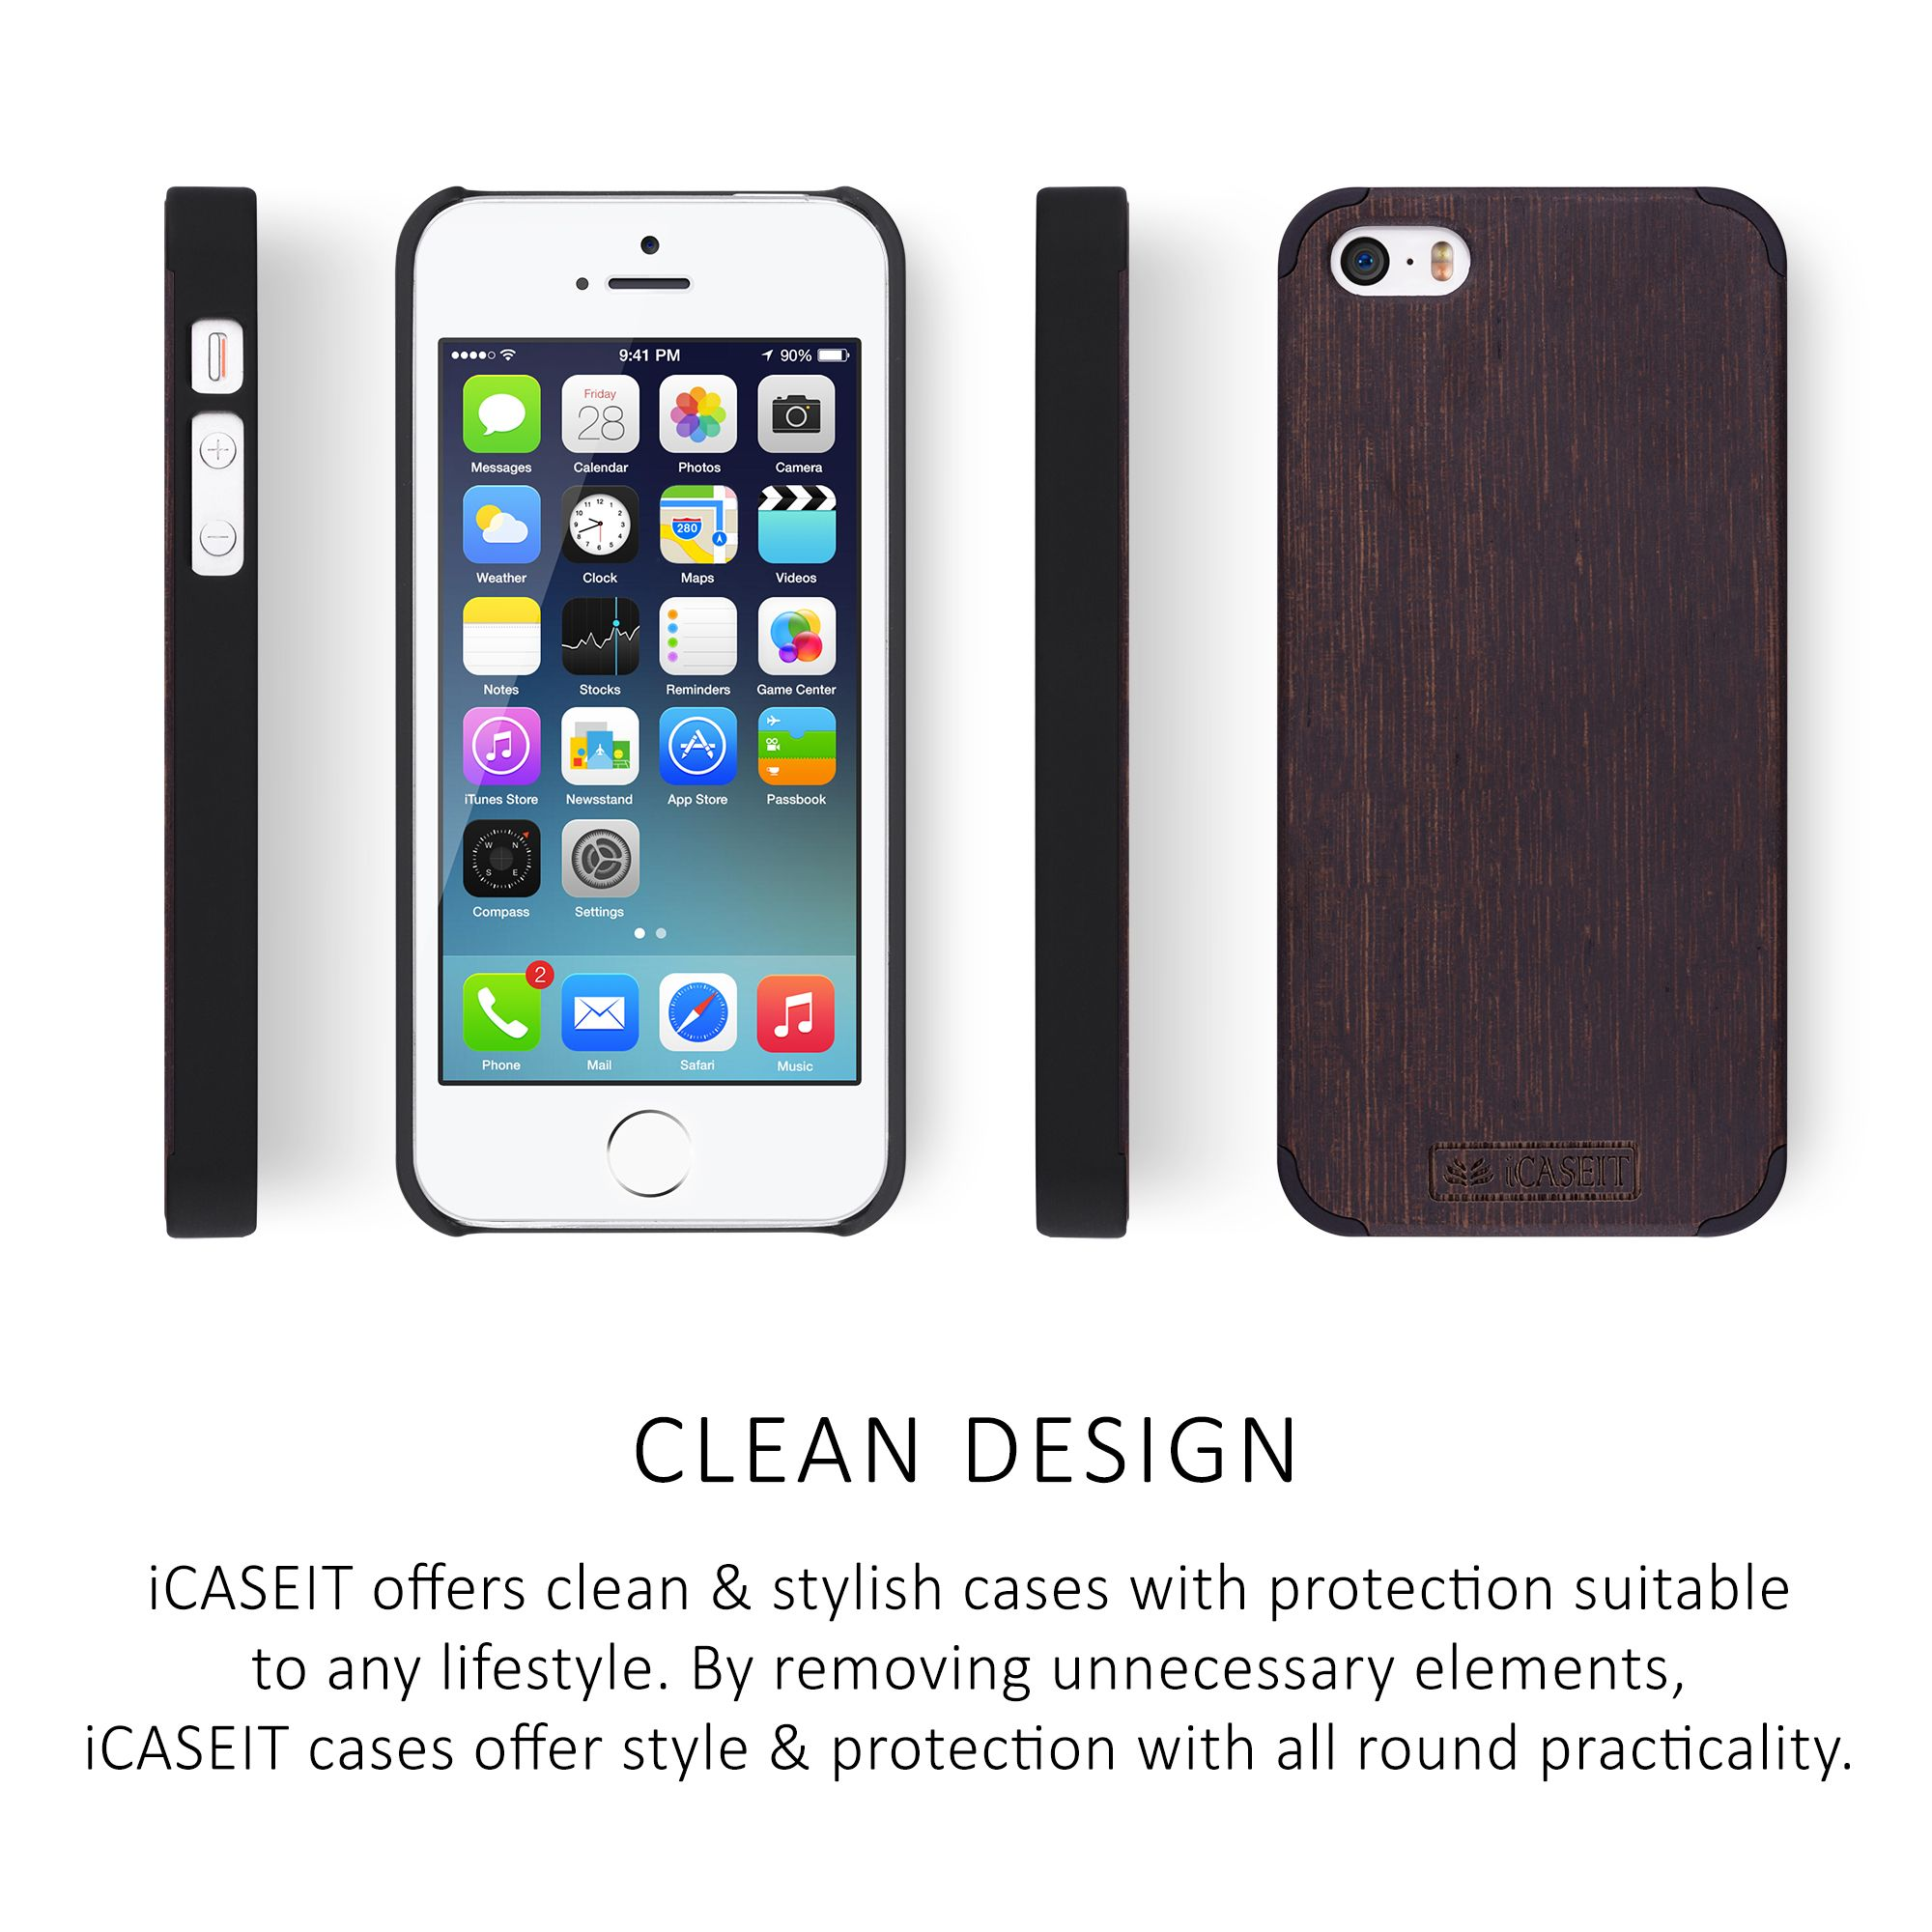 To acquire The stylish most iphone 5 cases picture trends